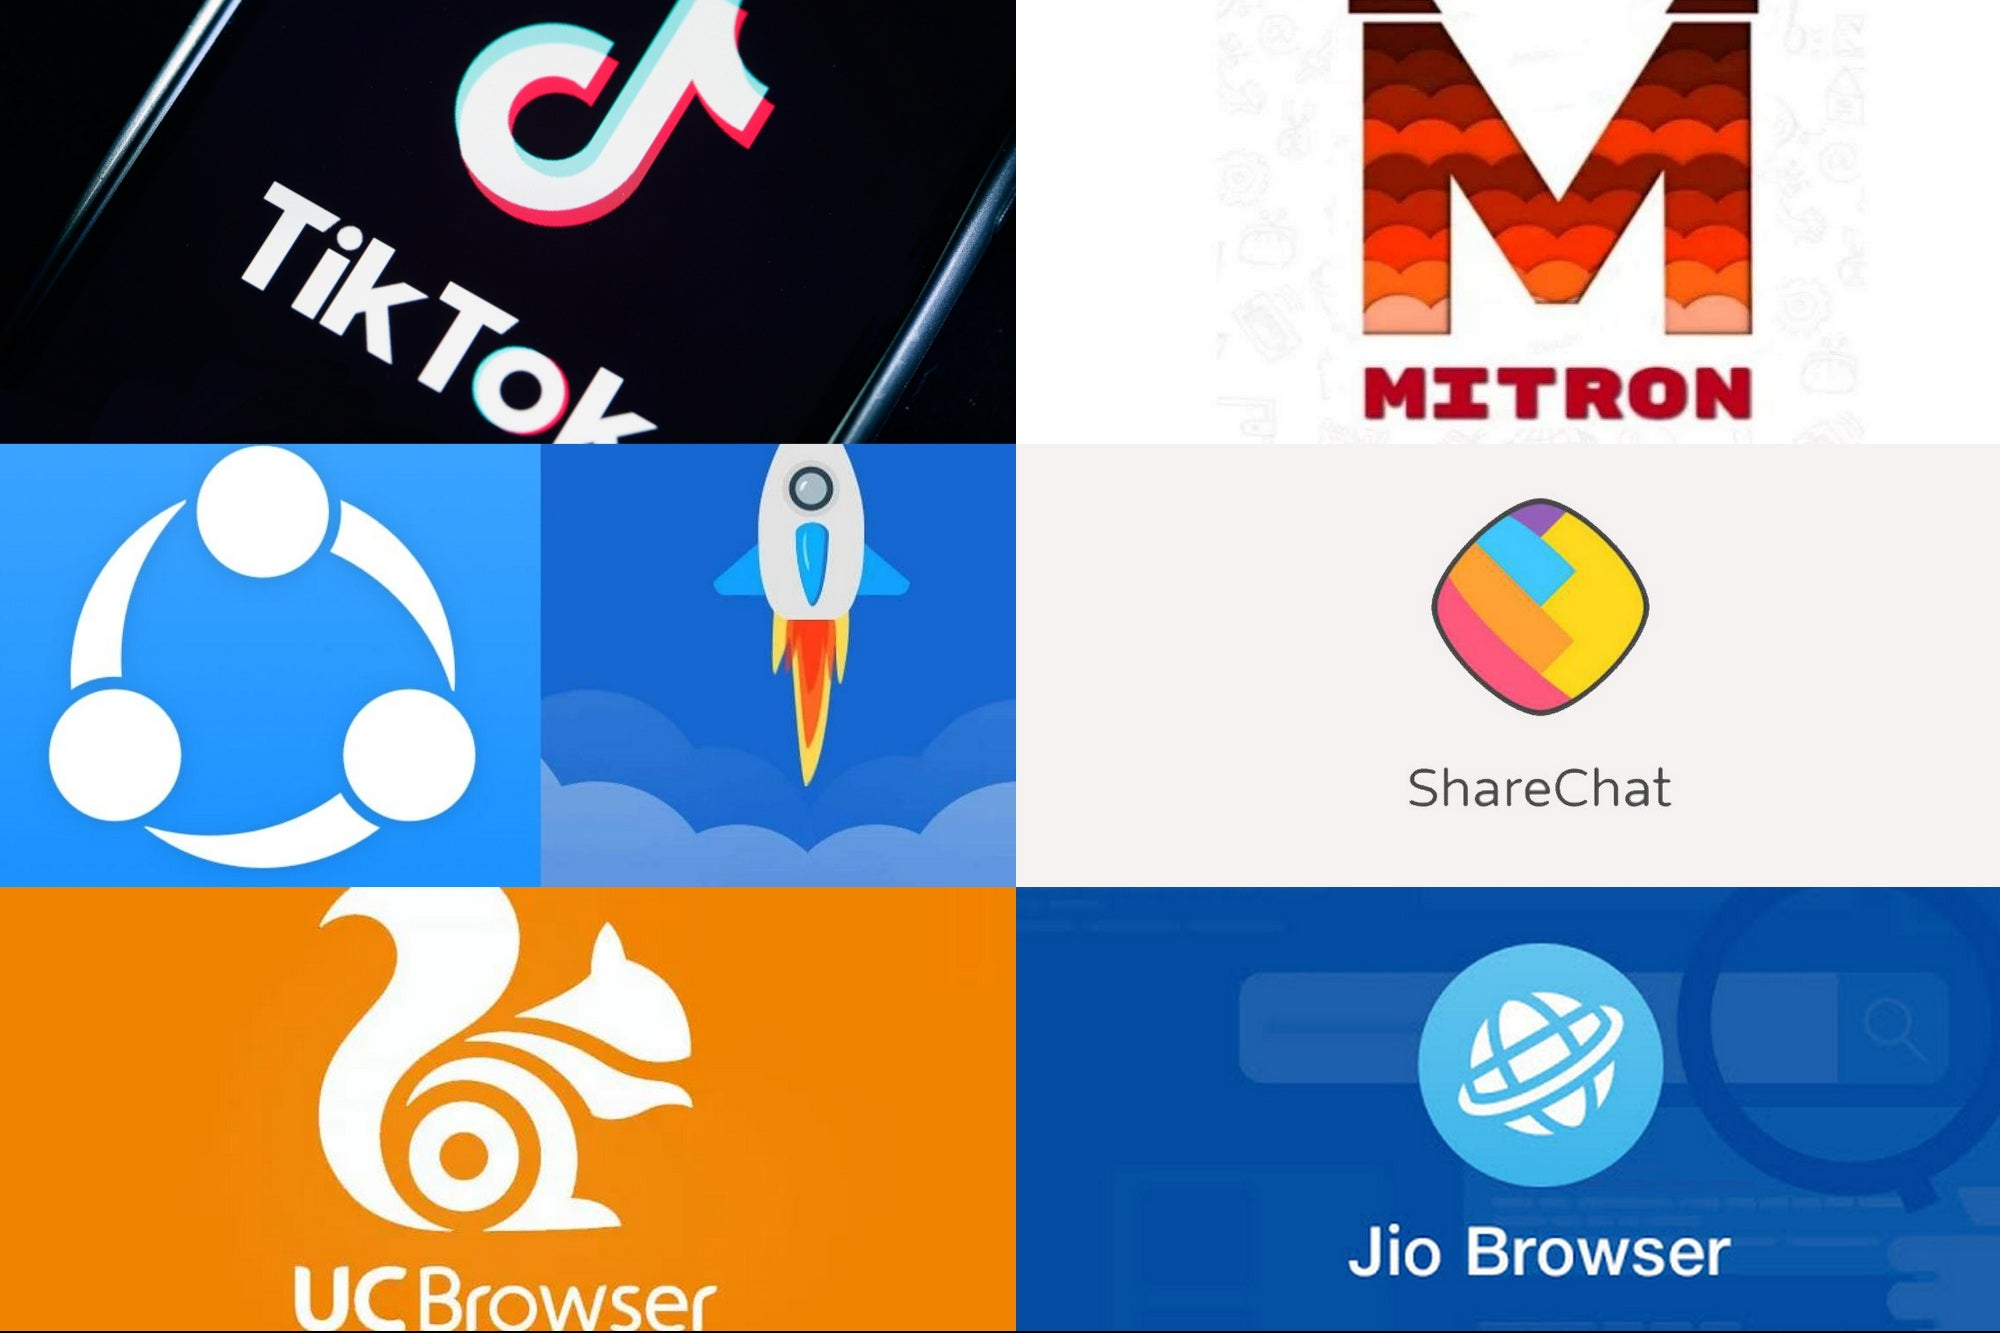 Indian Alternative to Chinese Apps like TikTok, CamScanner, Shein, and More